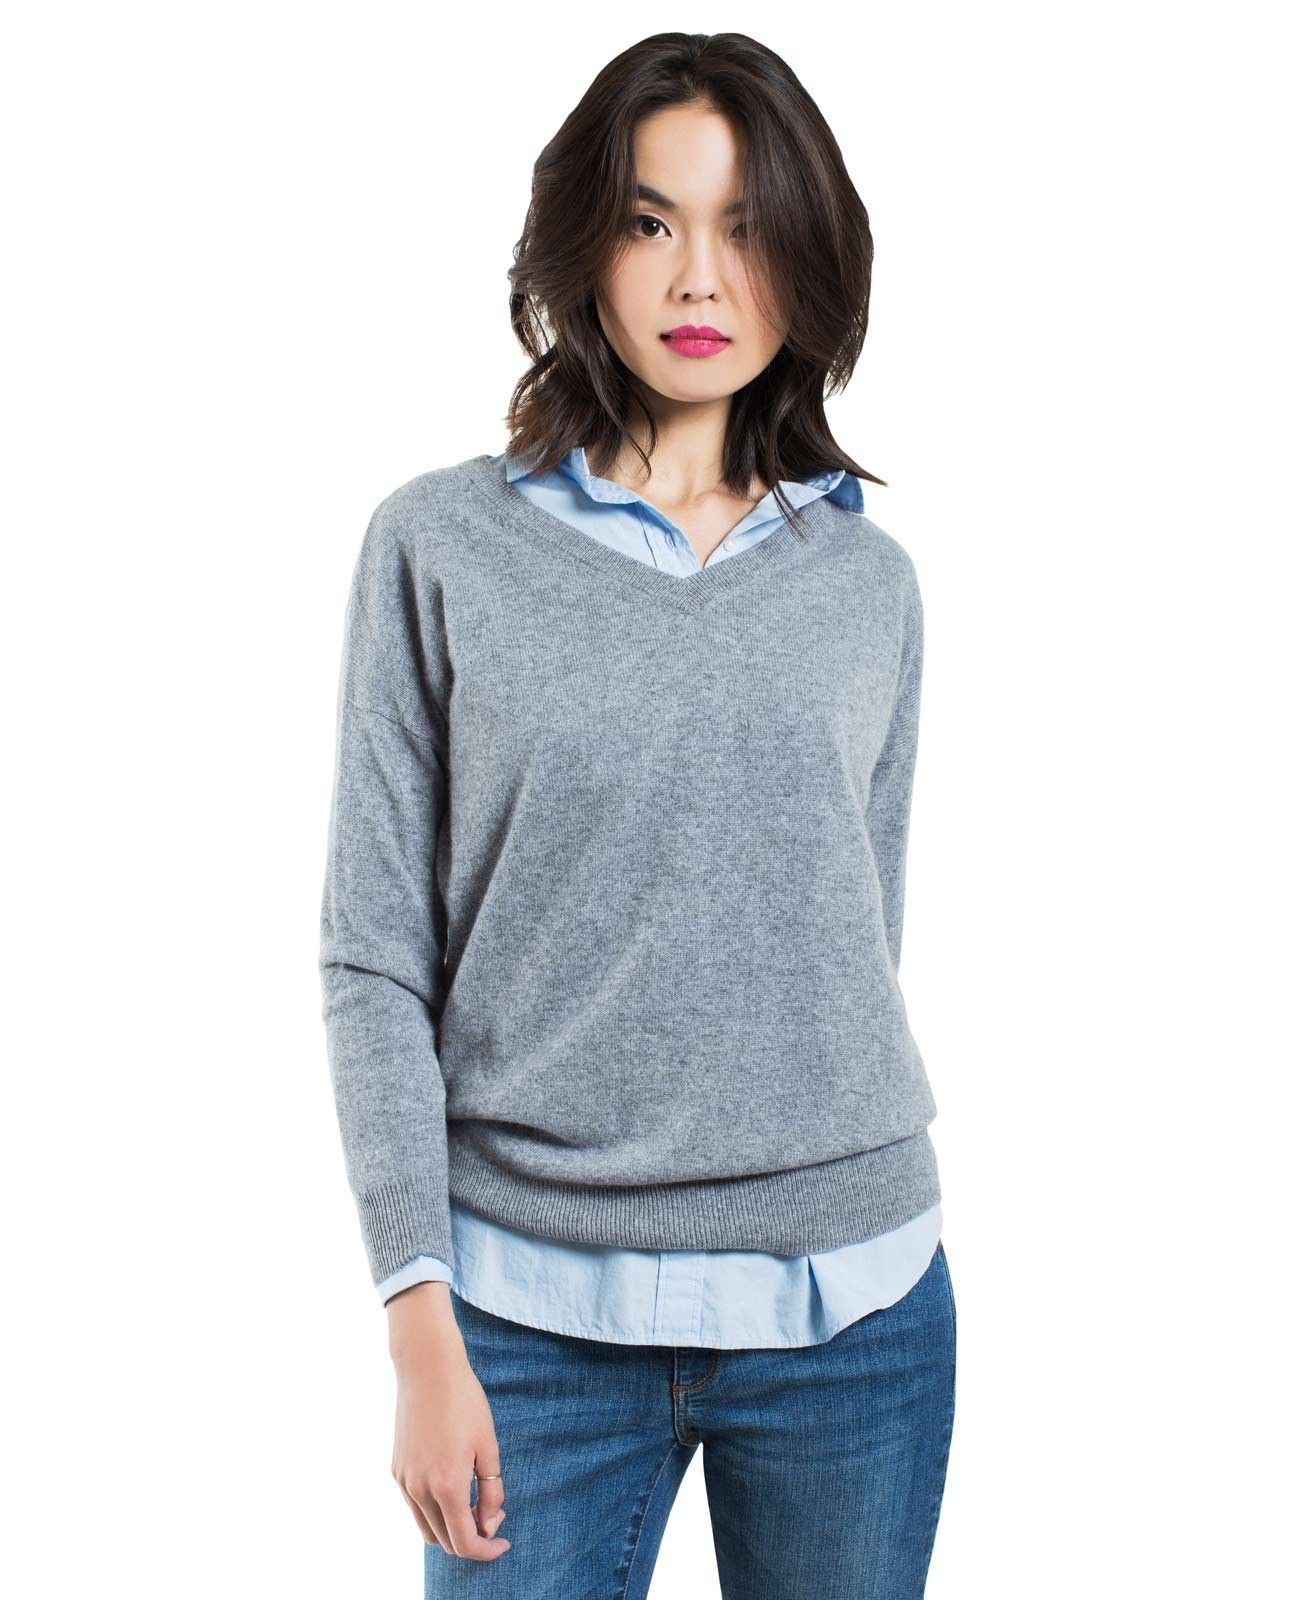 Women's Cashmere Boyfriend V-Neck Sweater - Boyfriend V-Neck ...